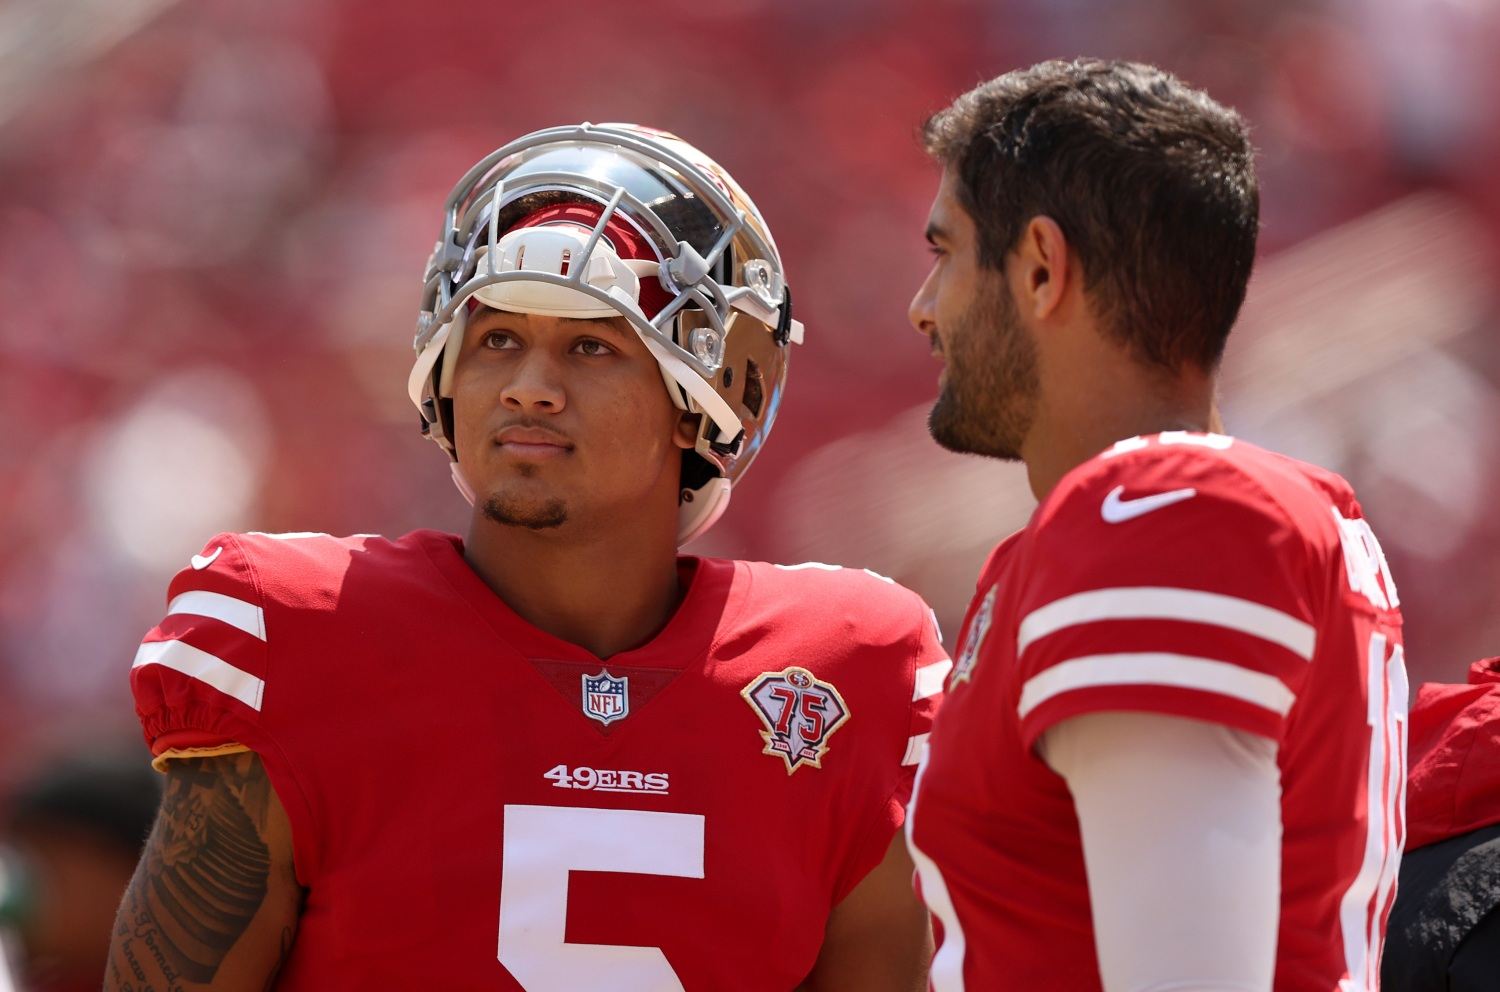 NFC West Preview: 'The Strongest Division In Football', CBS San Francisco's Vern Glenn Has 49ers Coming Out On Top